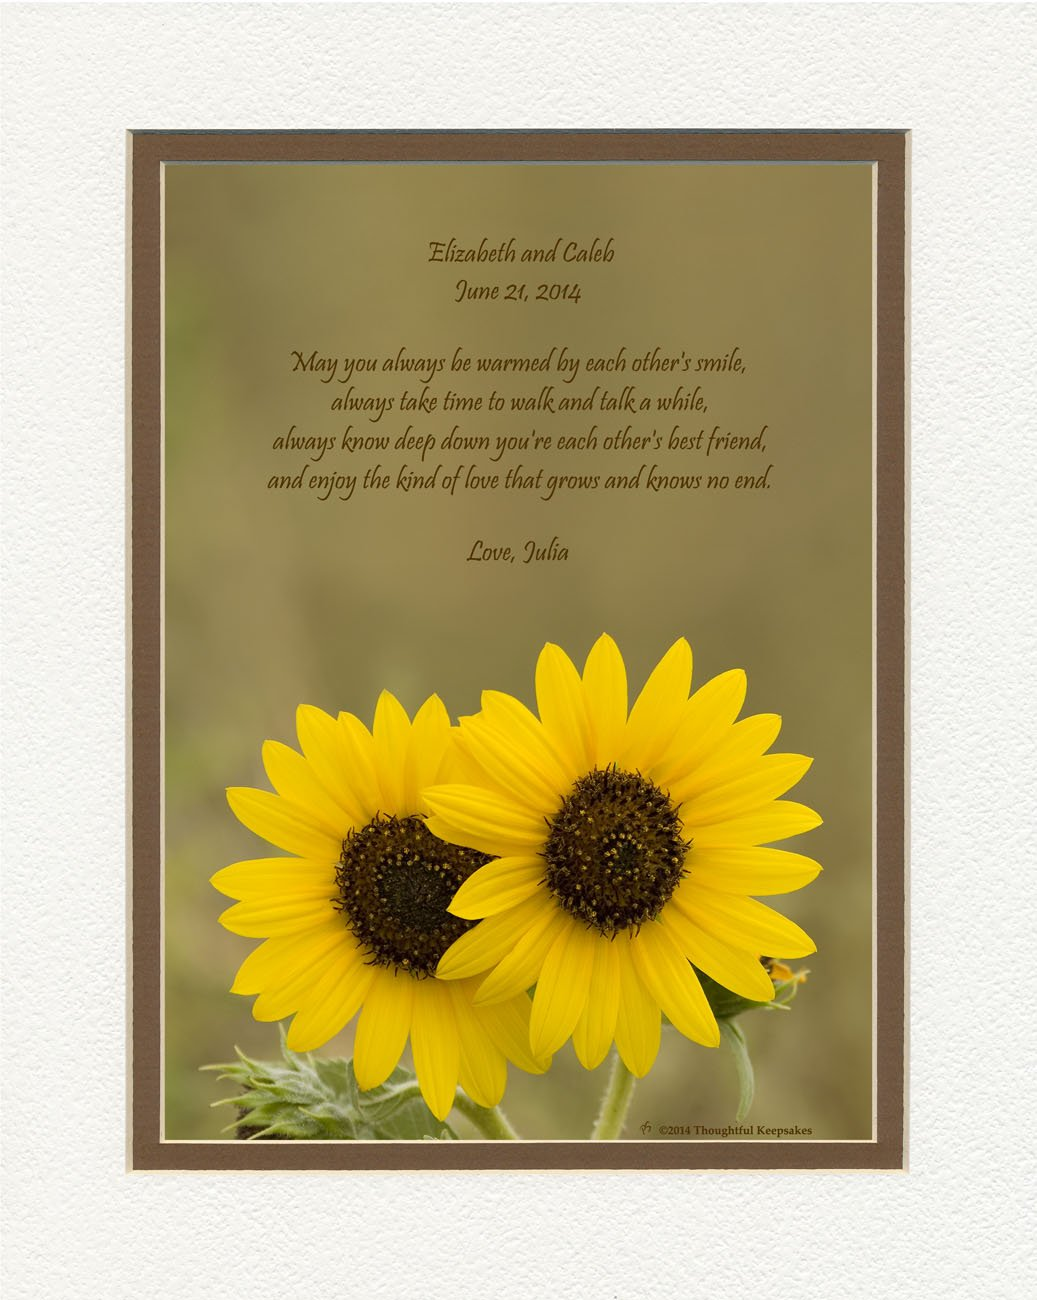 Personalized Wedding Gift for Couple or Personalized Anniversary Gift for Couple. Sunflowers Photo with Special Poem, 8x10 Double Matted